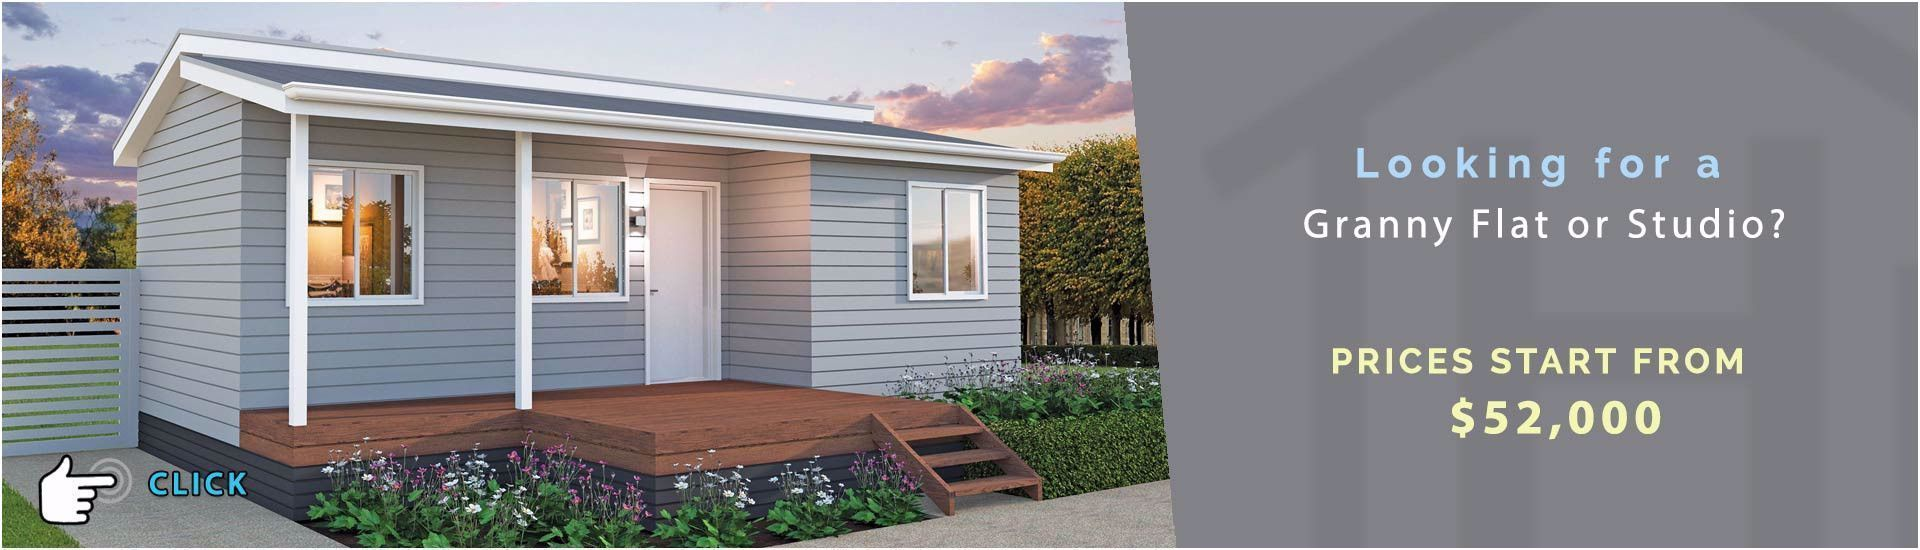 #granny pods backyard cottage 2 Bedroom #granny pods backyard cottage Interiors Granny pods small #grannypods Portable Mother In Law Houses Portable Mother In Law Houses . Portable Mother In Law Houses . Transportable Homes Nsw  Best Picture For  granny pods backyard cottage back yard  For Your Taste #backyard #Bedroom #cottage #granny #pods #grannypods